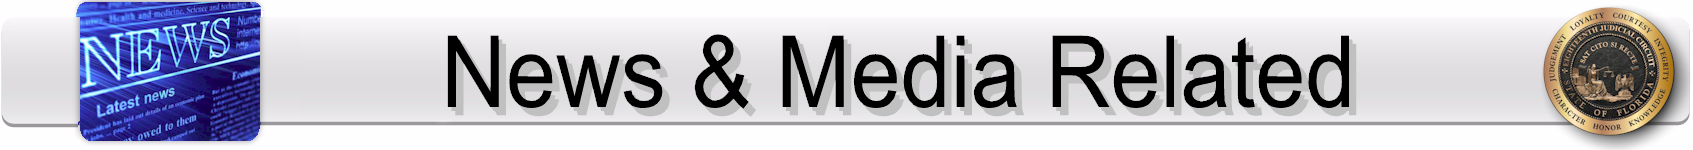 Media Related Administrative Orders Page Banner